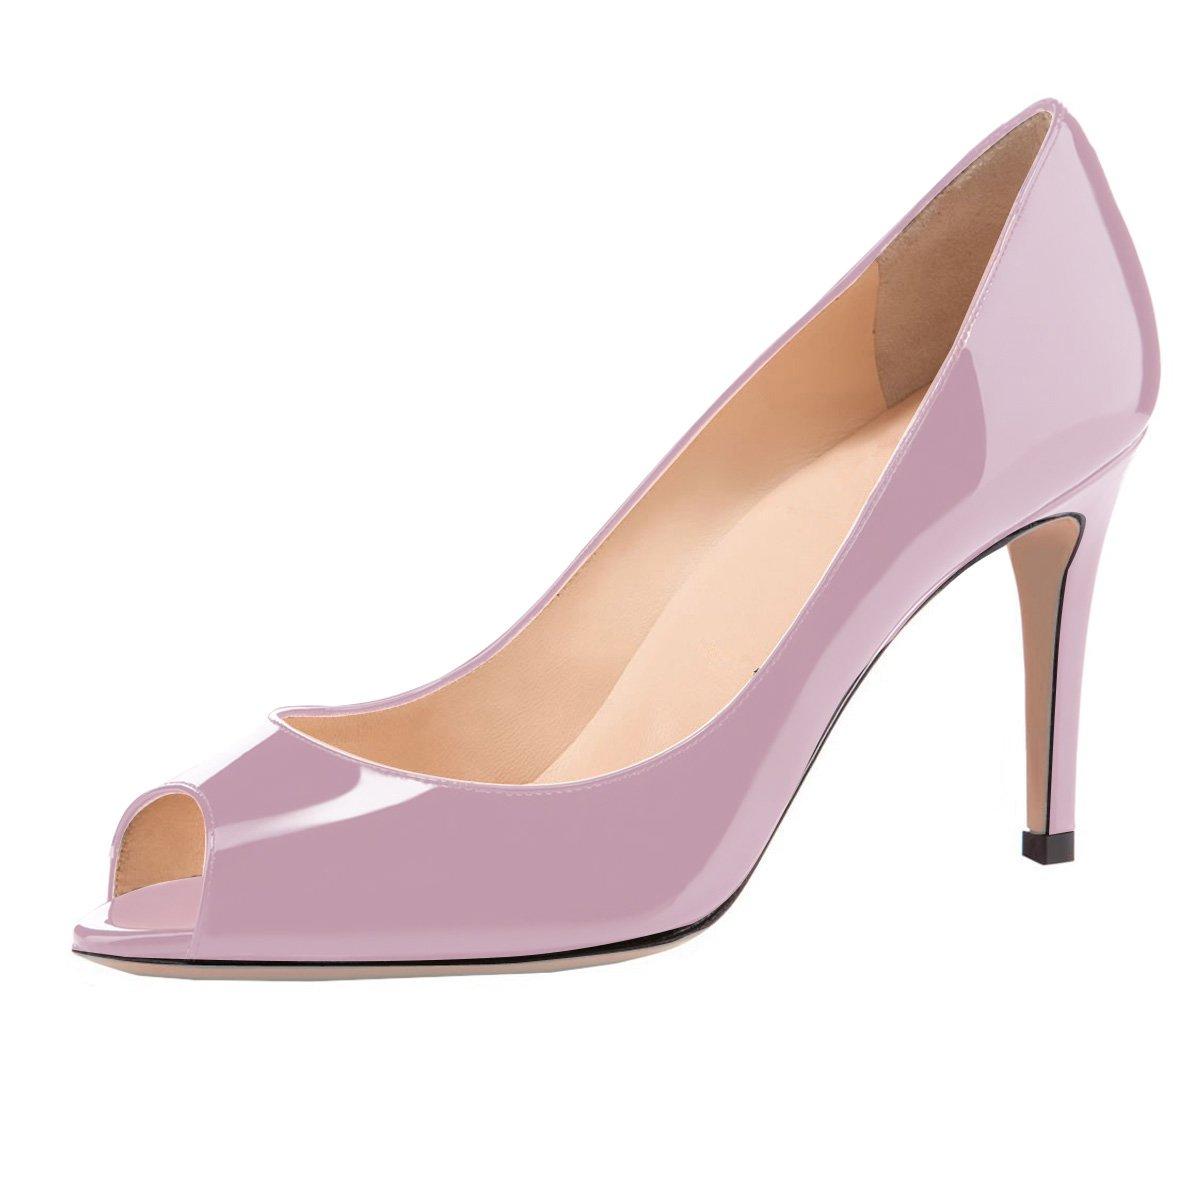 Eldof Women Peep Toe Pumps Mid-Heel Pumps Formal Wedding Bridal Classic Heel Open Toe Stiletto B07F1KMGF2 10.5 B(M) US|Light Purple